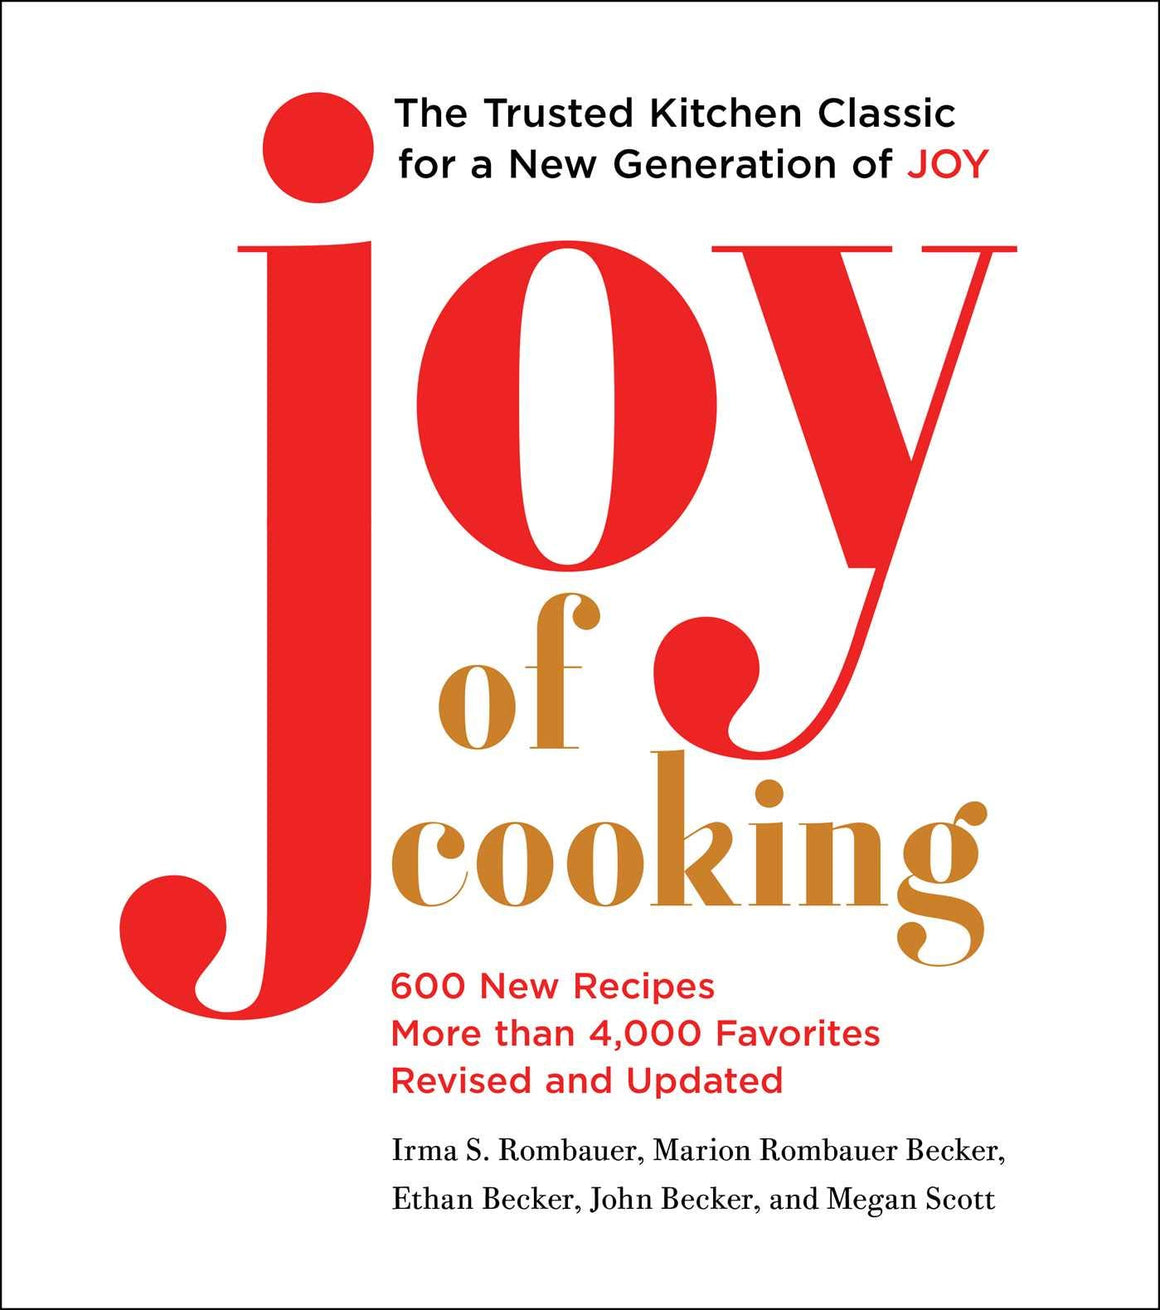 John Becker & Megan Scott • Joy of Cooking: 2019 Edition Fully Revised and Updated. SIGNED!